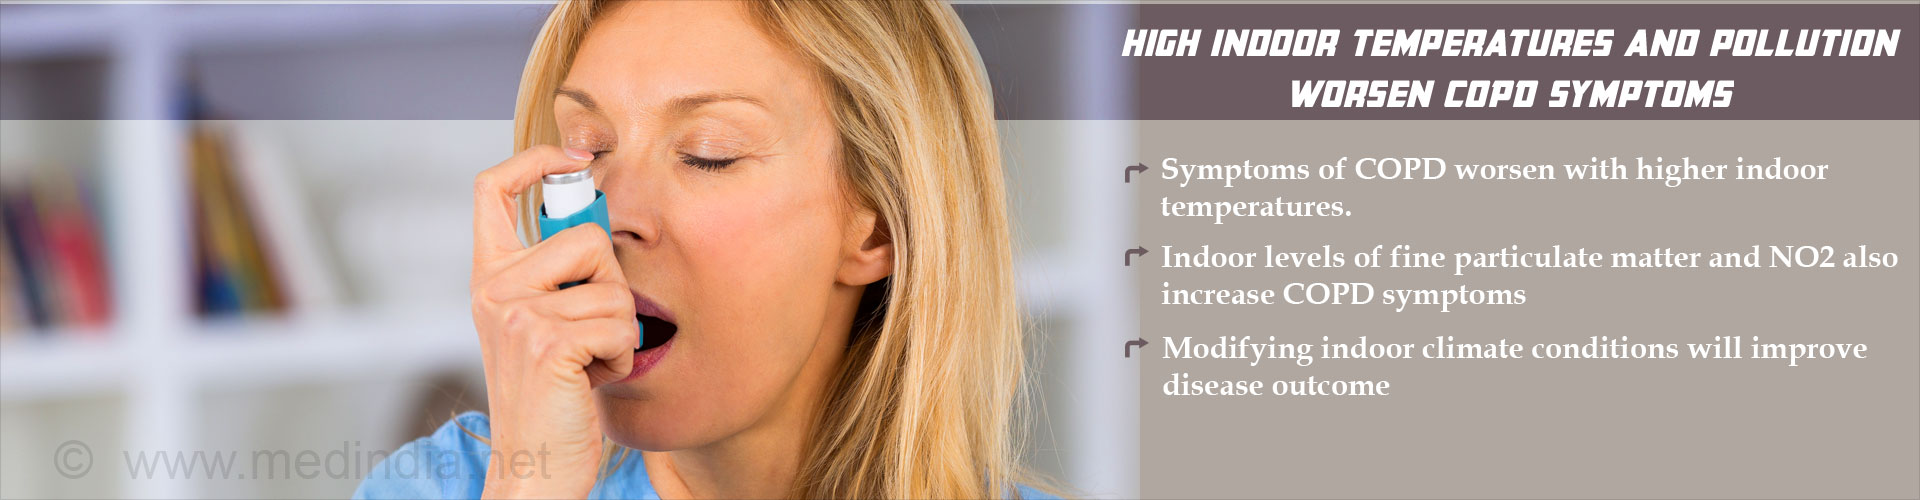 COPD Symptoms Worsen With High Indoor Temperatures and Pollution Levels